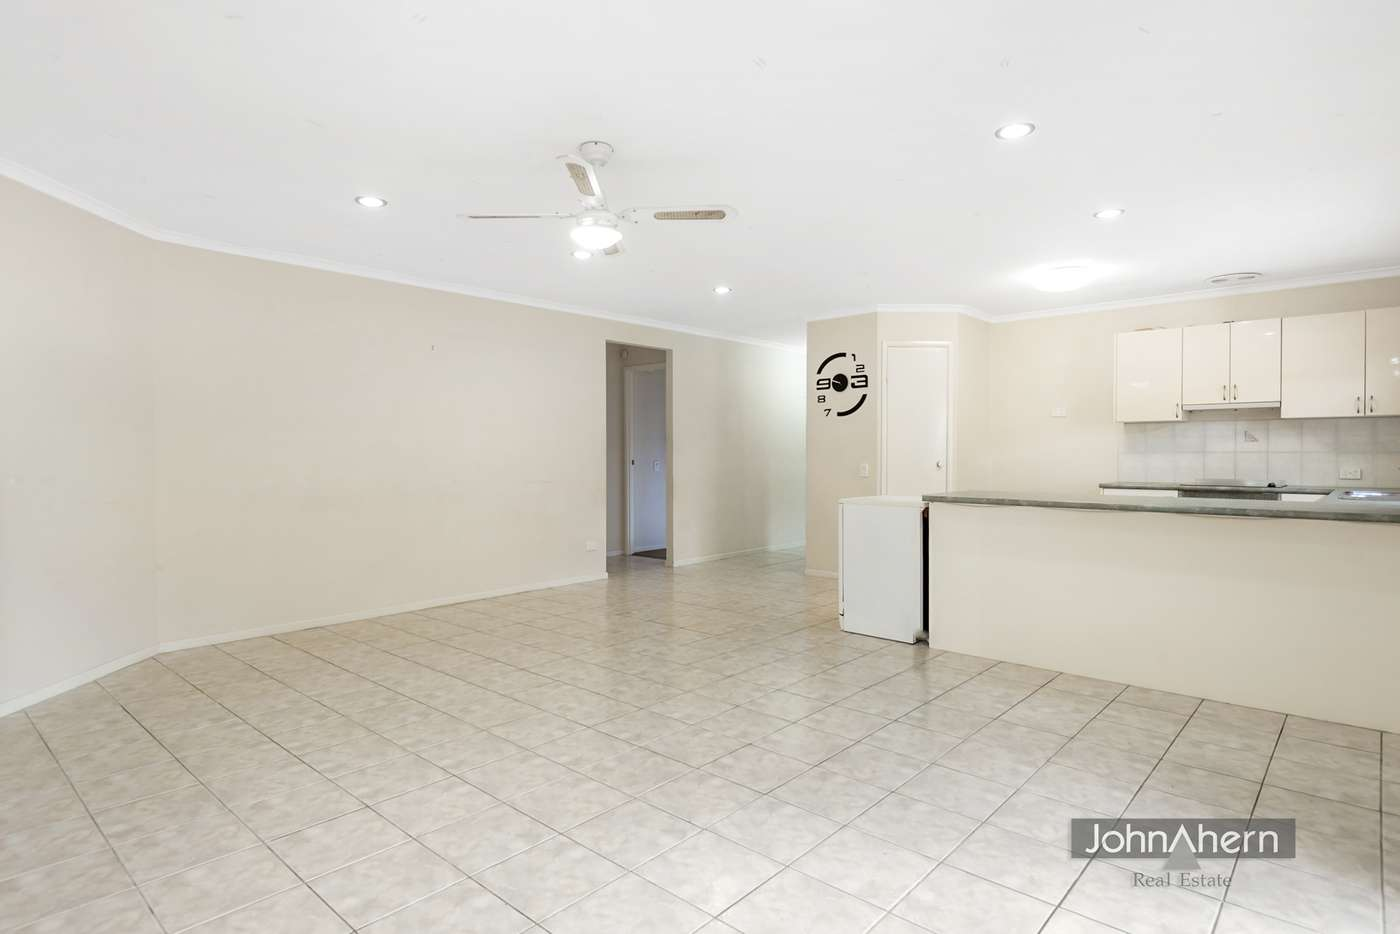 Fifth view of Homely house listing, 47 Chesterfield Cres, Kuraby QLD 4112